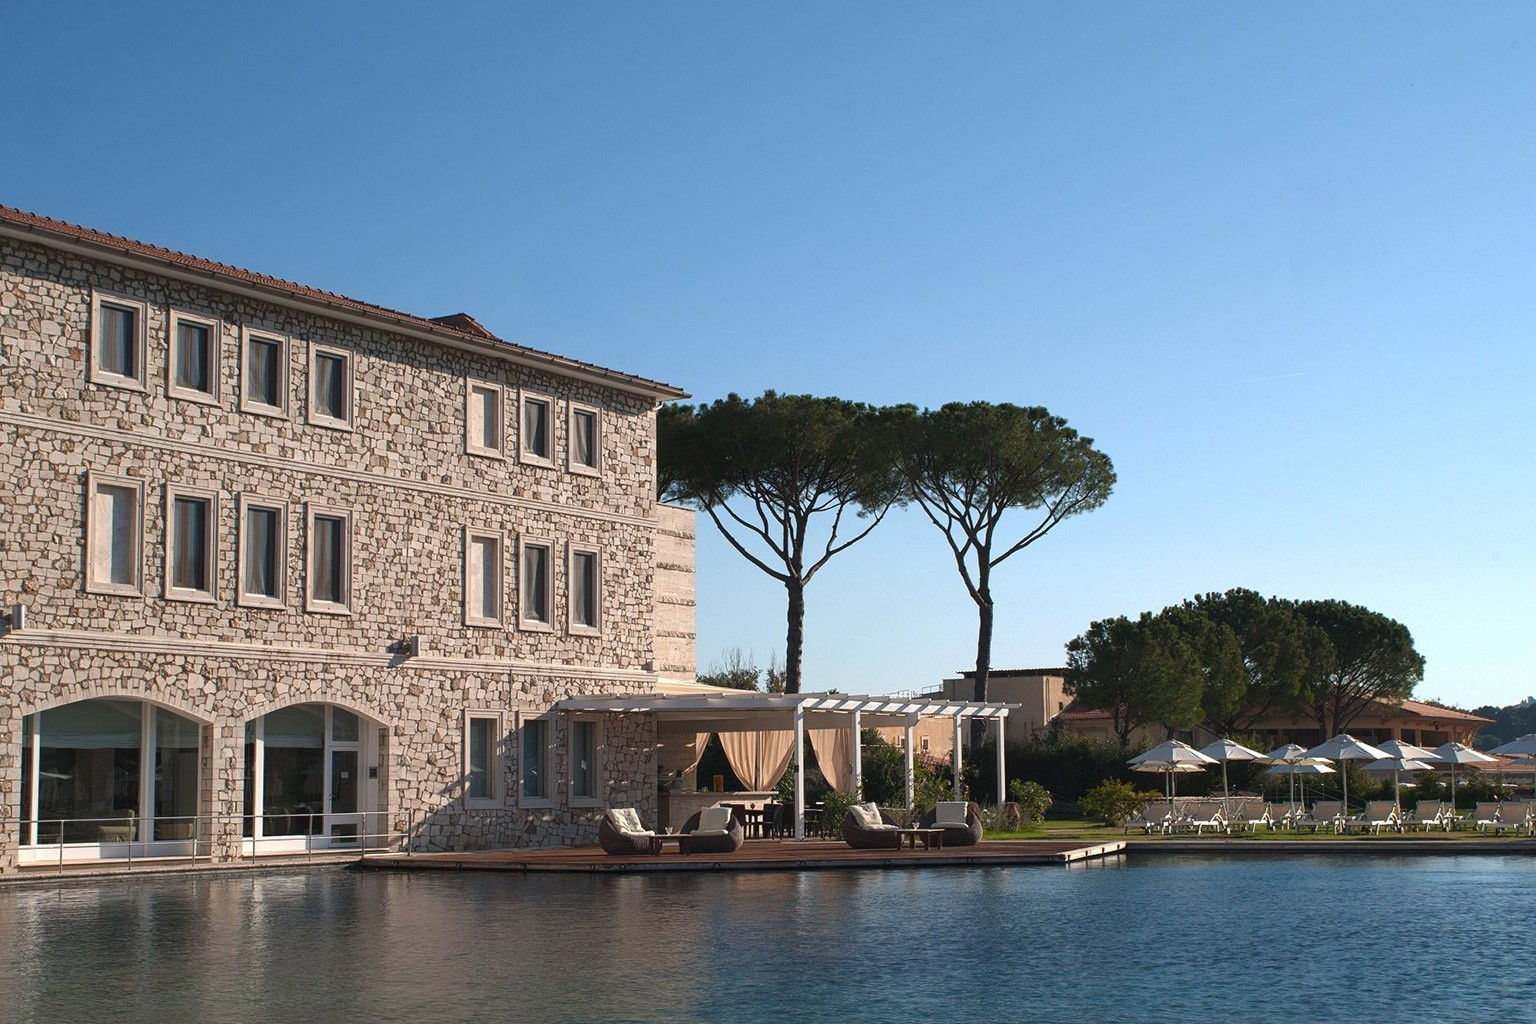 Terme di saturnia spa golf resort designreisen for Designhotel toskana